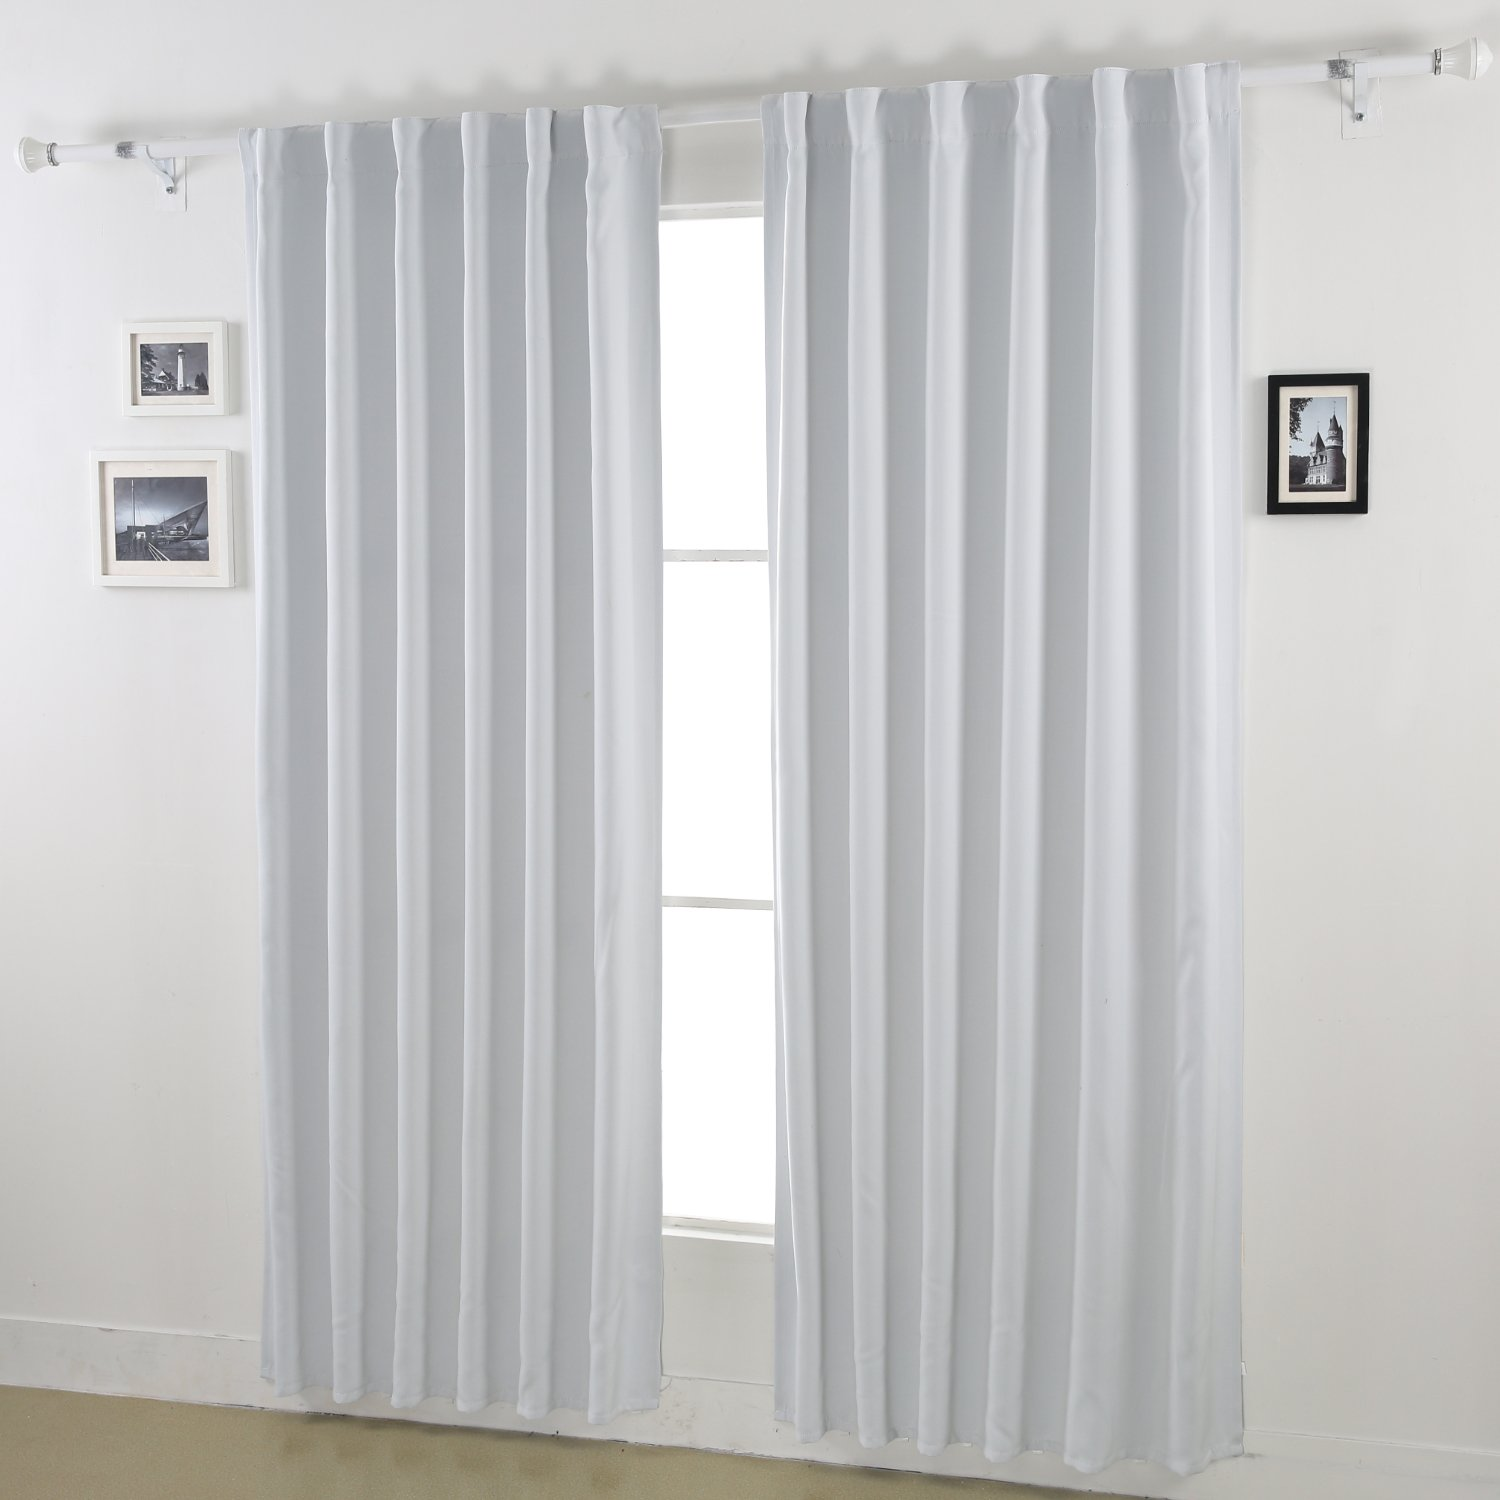 Deconovo Back Tab and Rod Pocket Curtains Blackout Curtains Thermal Insulated Room Darkening Curtains